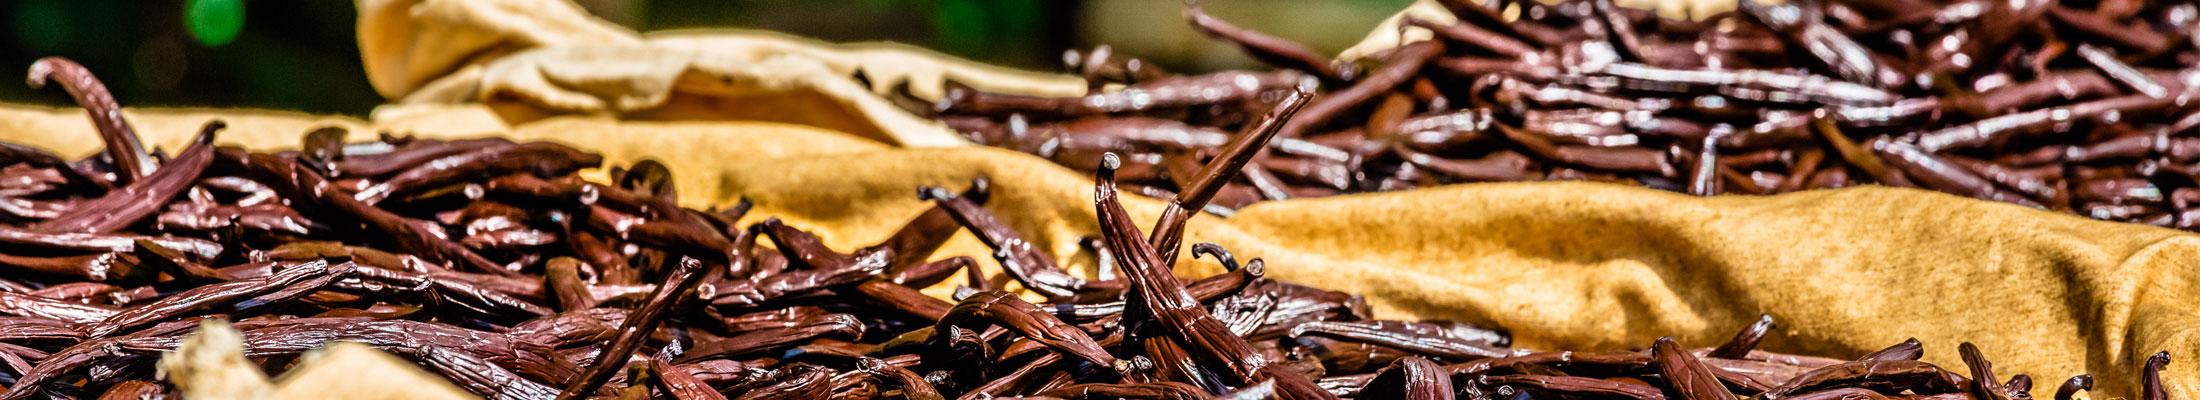 SPECIAL OFFERS - Vanilla Beans and Spices